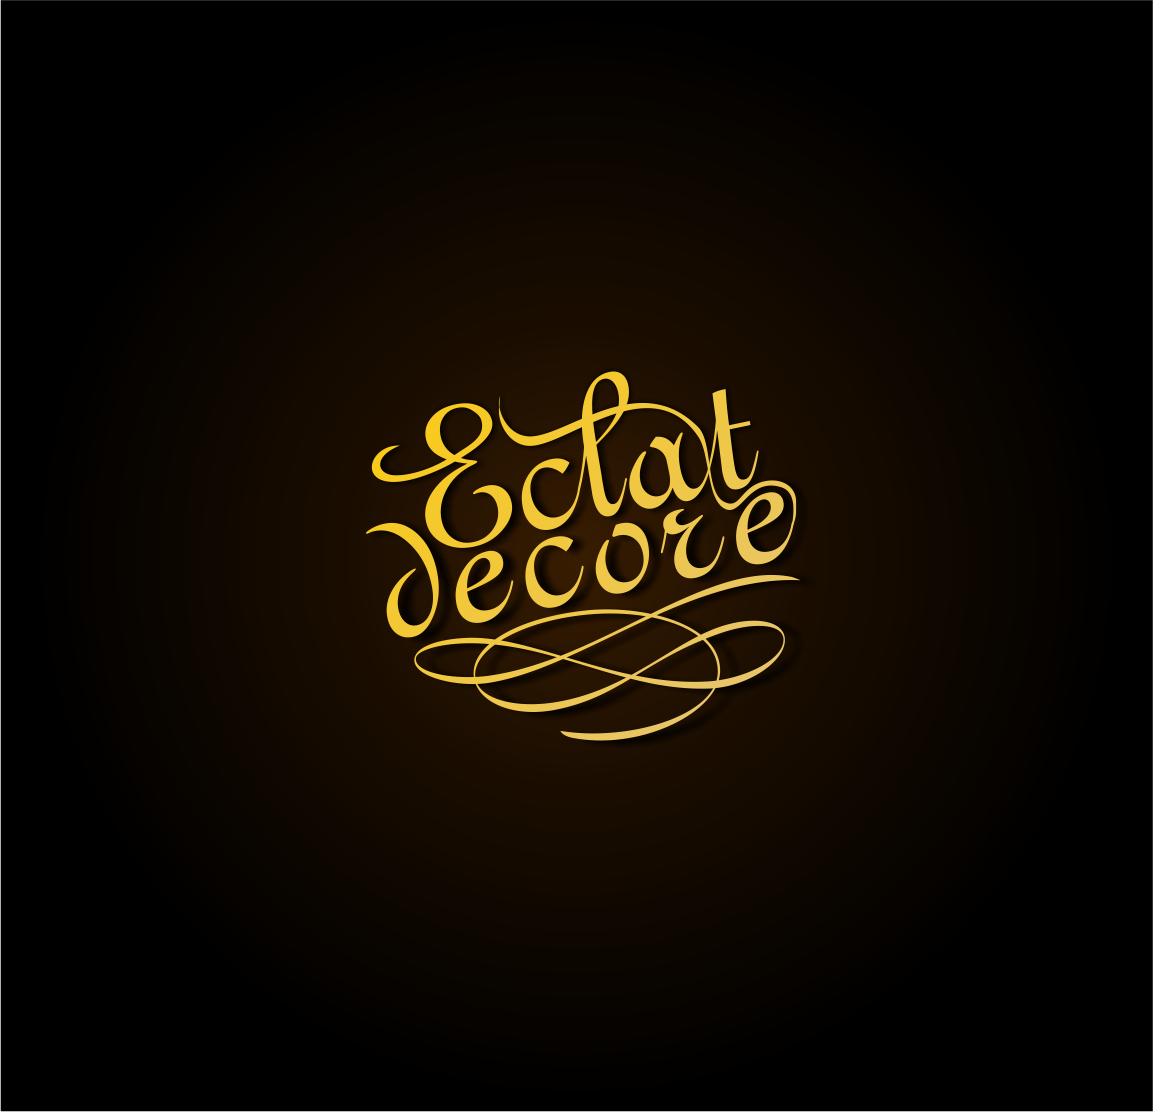 Logo Design by haidu - Entry No. 69 in the Logo Design Contest Imaginative Logo Design for Éclat Decor.